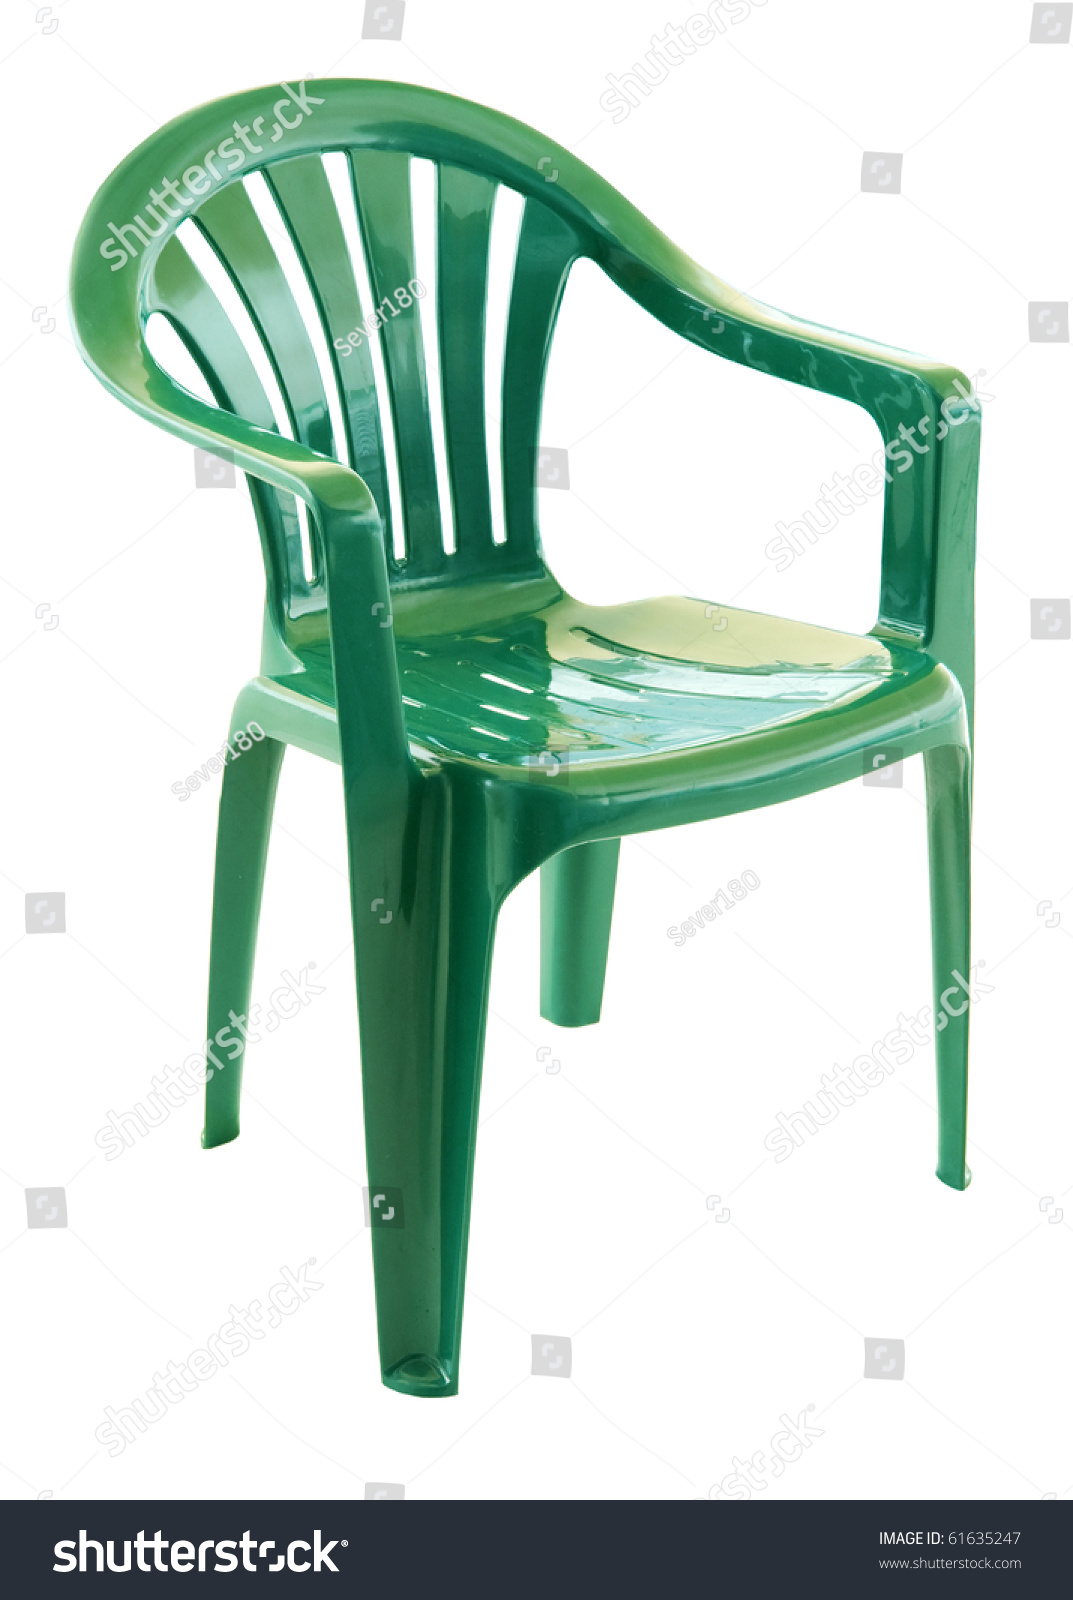 green plastic chair on a white background - Plastic Chair